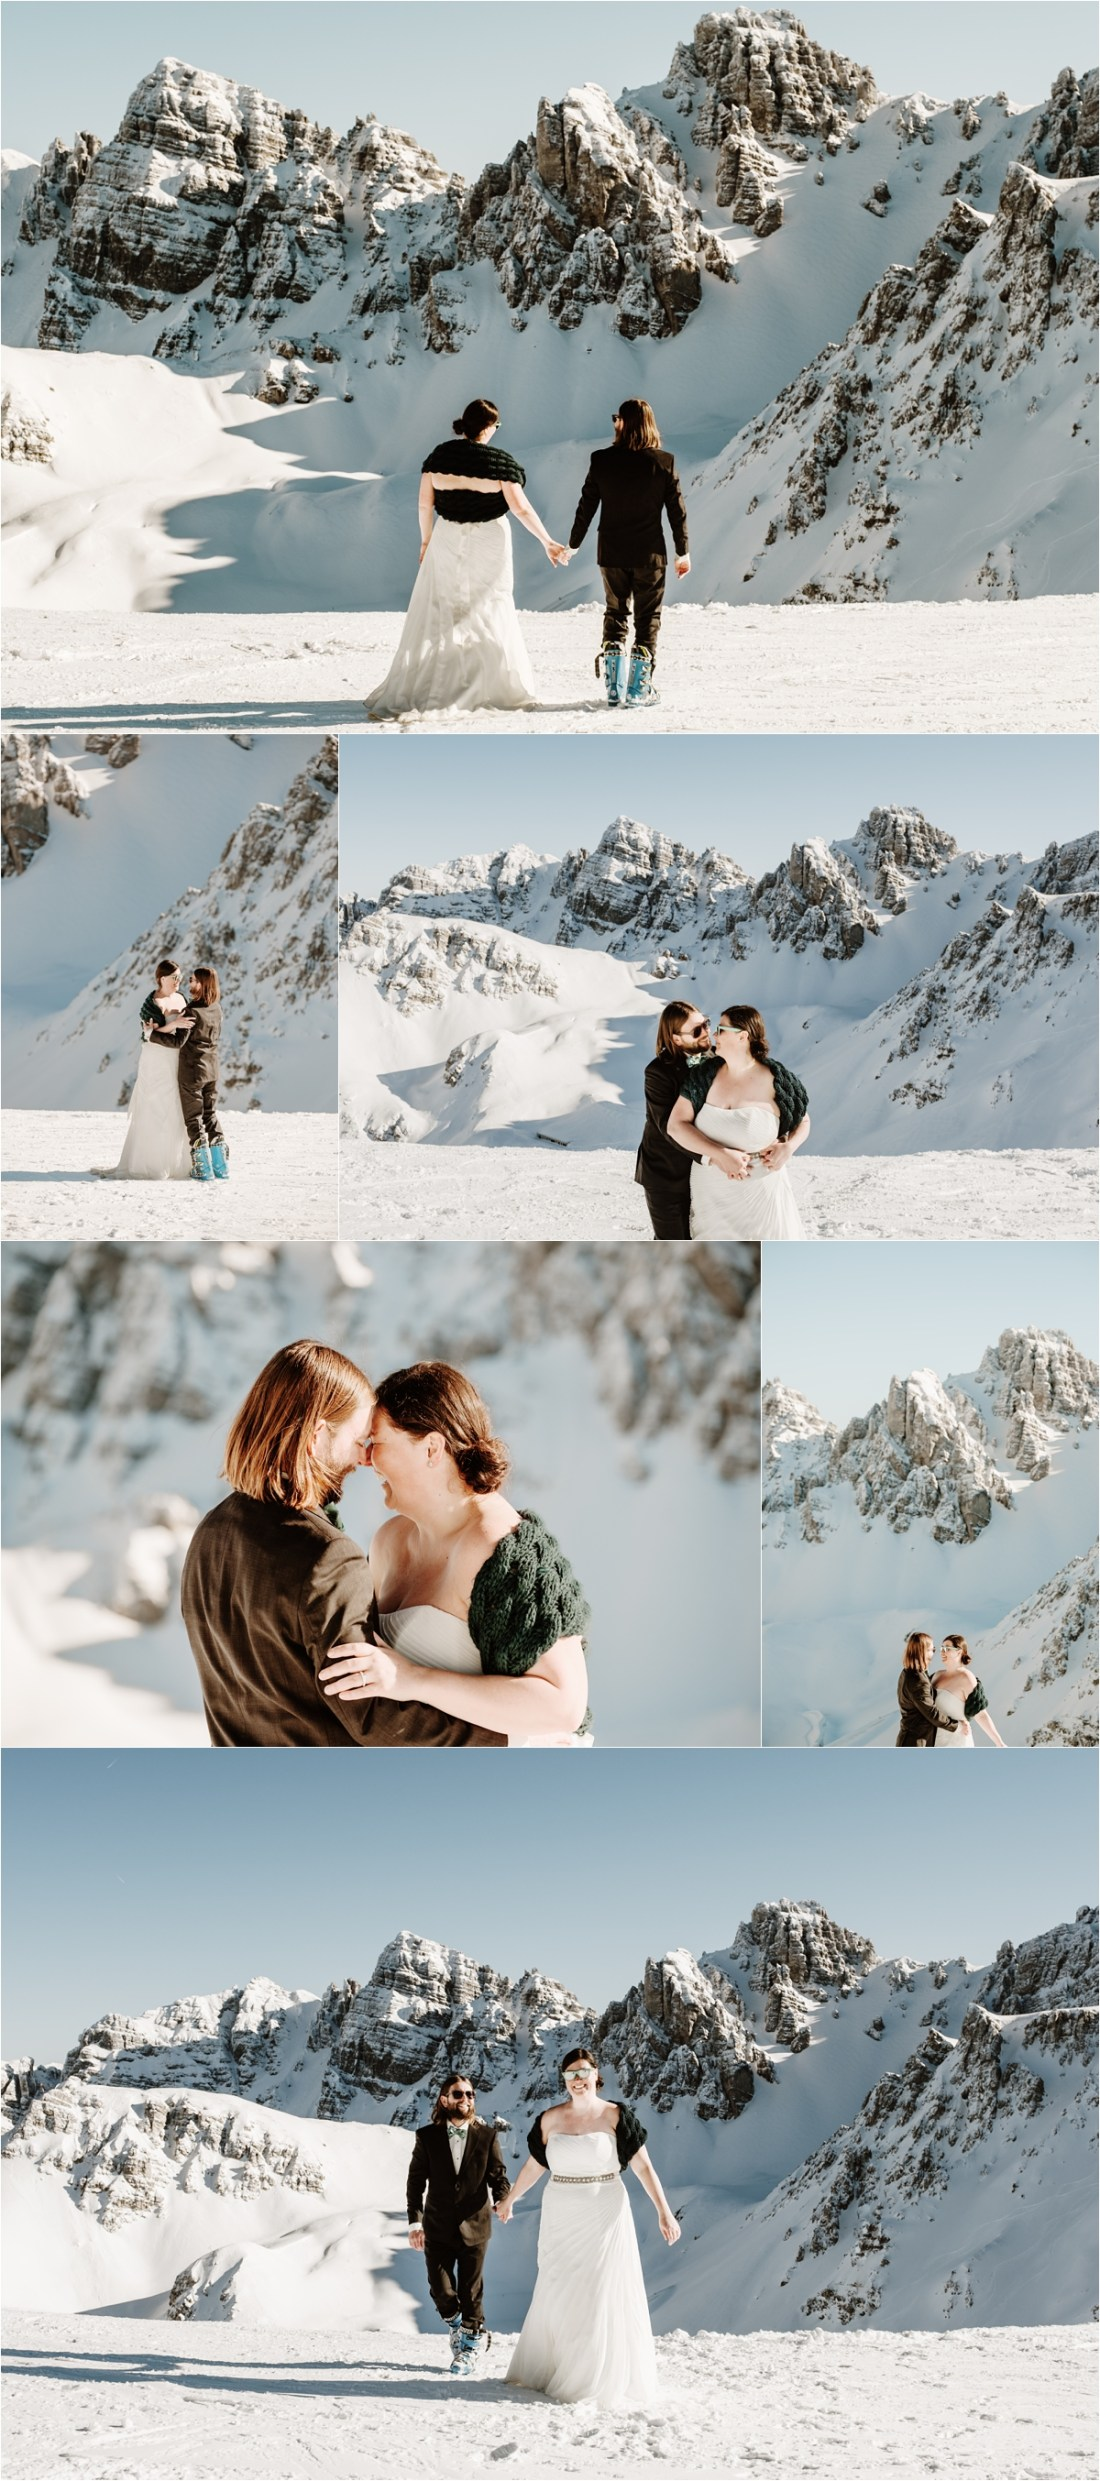 A skiing inspired wedding shoot in the mountains around Innsbruck by Wild Connections Photography